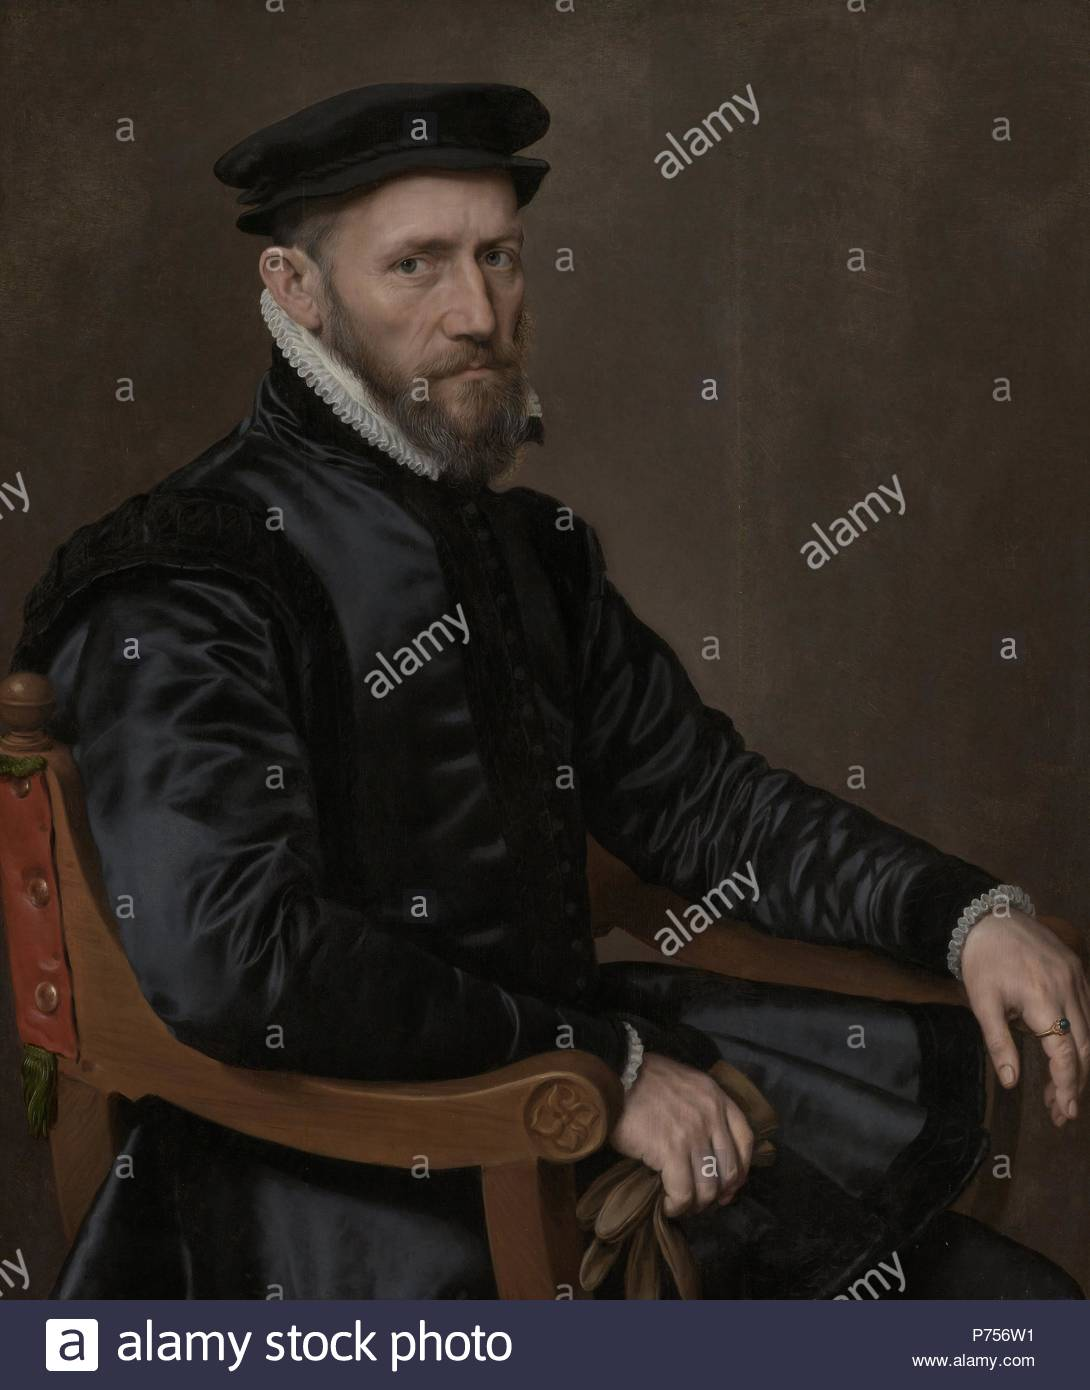 Portraits of Sir Thomas Gresham and Anne Fernely, Anthonis Mor, c. 1560 - c. 1565. - Stock Image